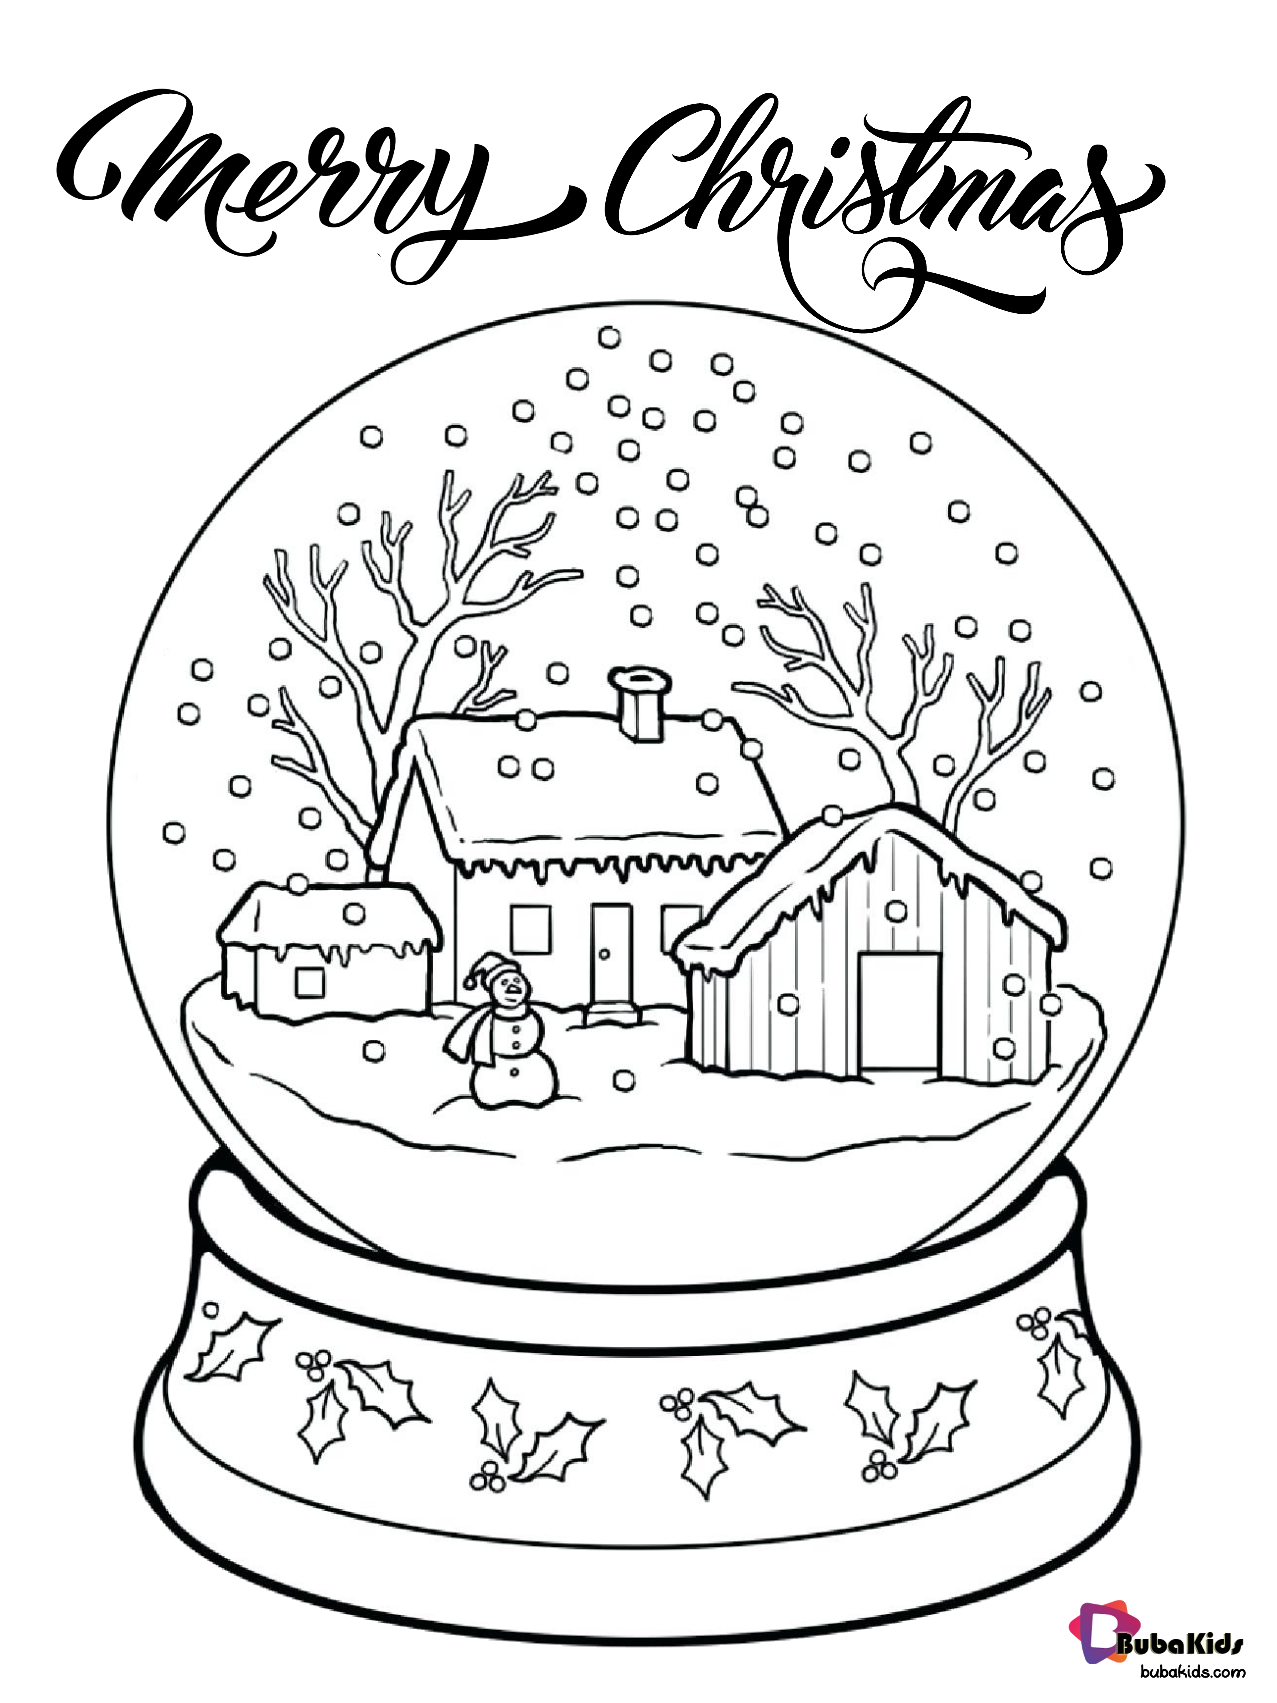 Free Download Merry Christmas Snow Globe Printable Coloring Pages Collection Of Cartoon Colo In 2020 Christmas Coloring Pages Printable Coloring Pages Coloring Pages